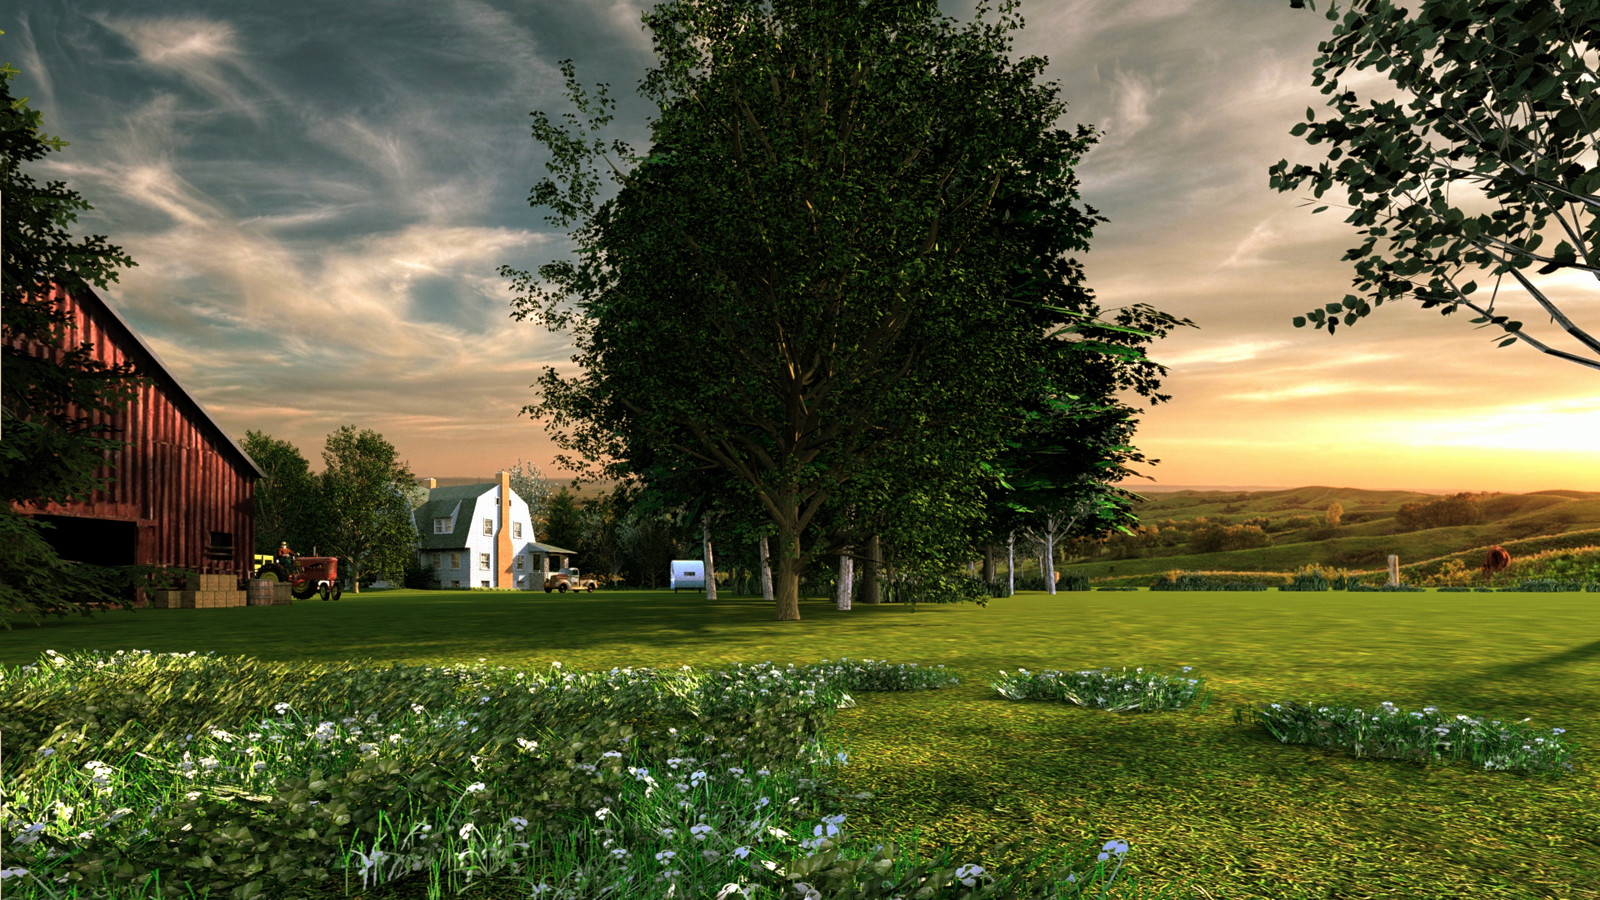 """""""Mason Farm - Here, Far and Away"""" - Summer Sun Collection    06 Masonfarm HD1080 35 - iP Kodac 02  """"SketchUp to LayOut"""" The Mason Farm Renders for the launching of the new book """"SketchUp to LayOut"""" http://bit.ly/2j0d0Wh by MasterSketchup."""